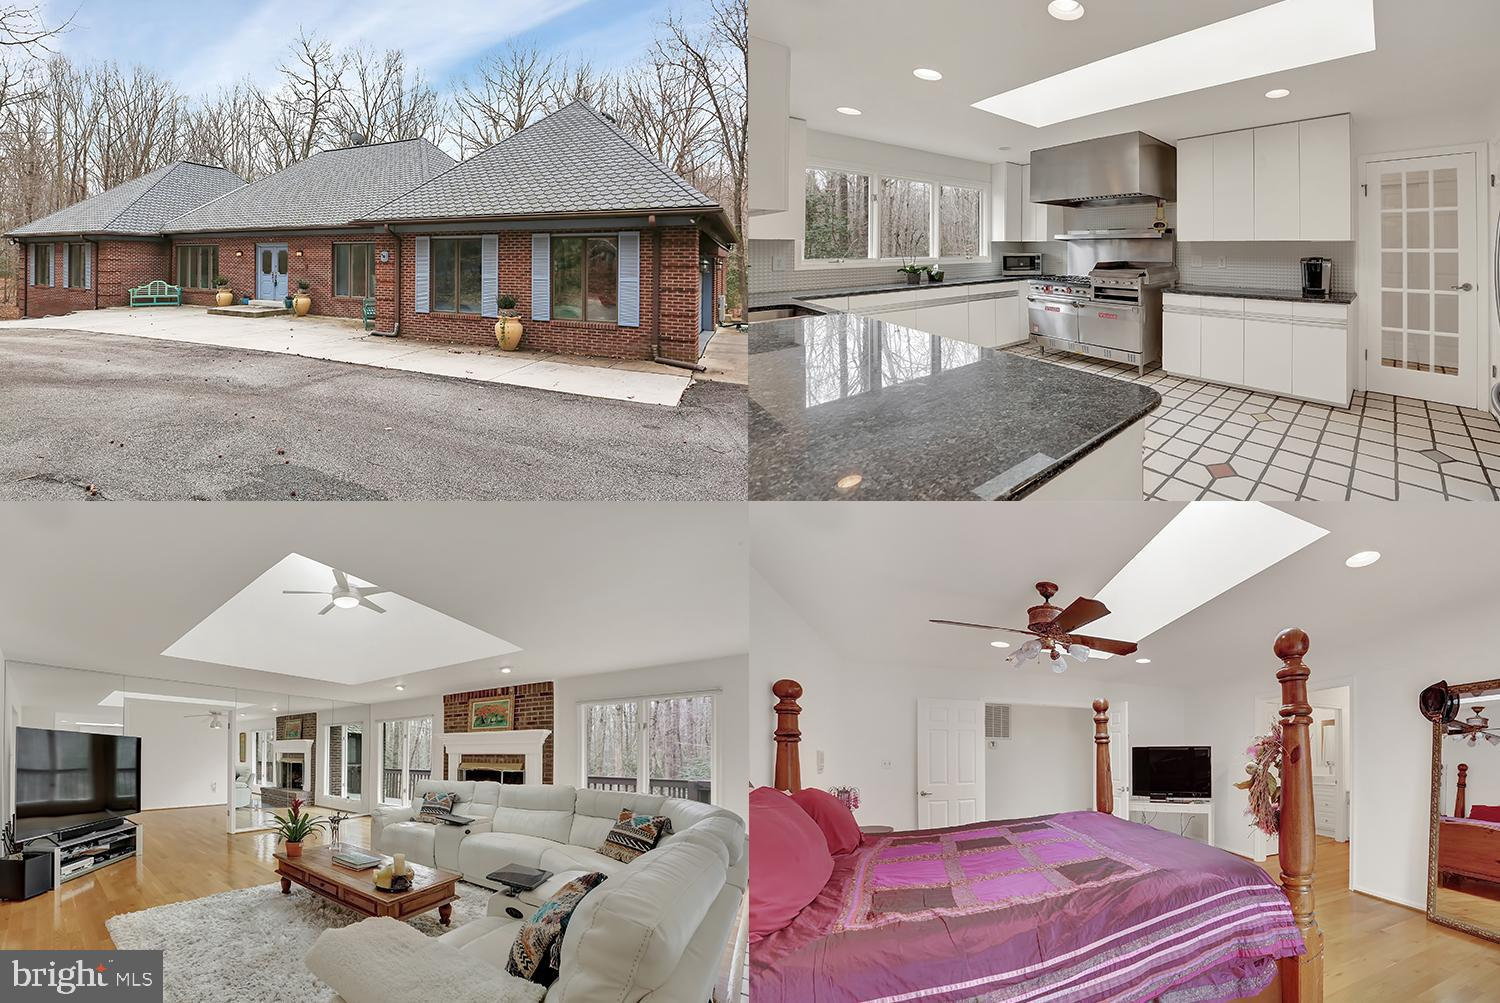 This one of a kind private Estate is surrounded by 9 secluded wooded acres in Fairfax County.  7 BRs and 5 BAs.  The fully finished lower level offers multiple options and uses with a separate entrance and driveway, two rec rooms, a complete kitchen, 3 bedrooms, a den/gym, a renovated full bath and separate laundry room.  The upper/main level features a gourmet kitchen with a breakfast bar, stainless steel appliances, granite counters.  Two separate living spaces and two kitchens make this a perfect home for residents and guests, or au pair, in-laws, or additional rental income.  Located near Belmont Bay on the Potomac, two state parks and Laurel Hill golf courses.  Very close to Ft. Belvoir, the Lorton Market Center, VRE and I-95.  LOTS of house and land for the price!